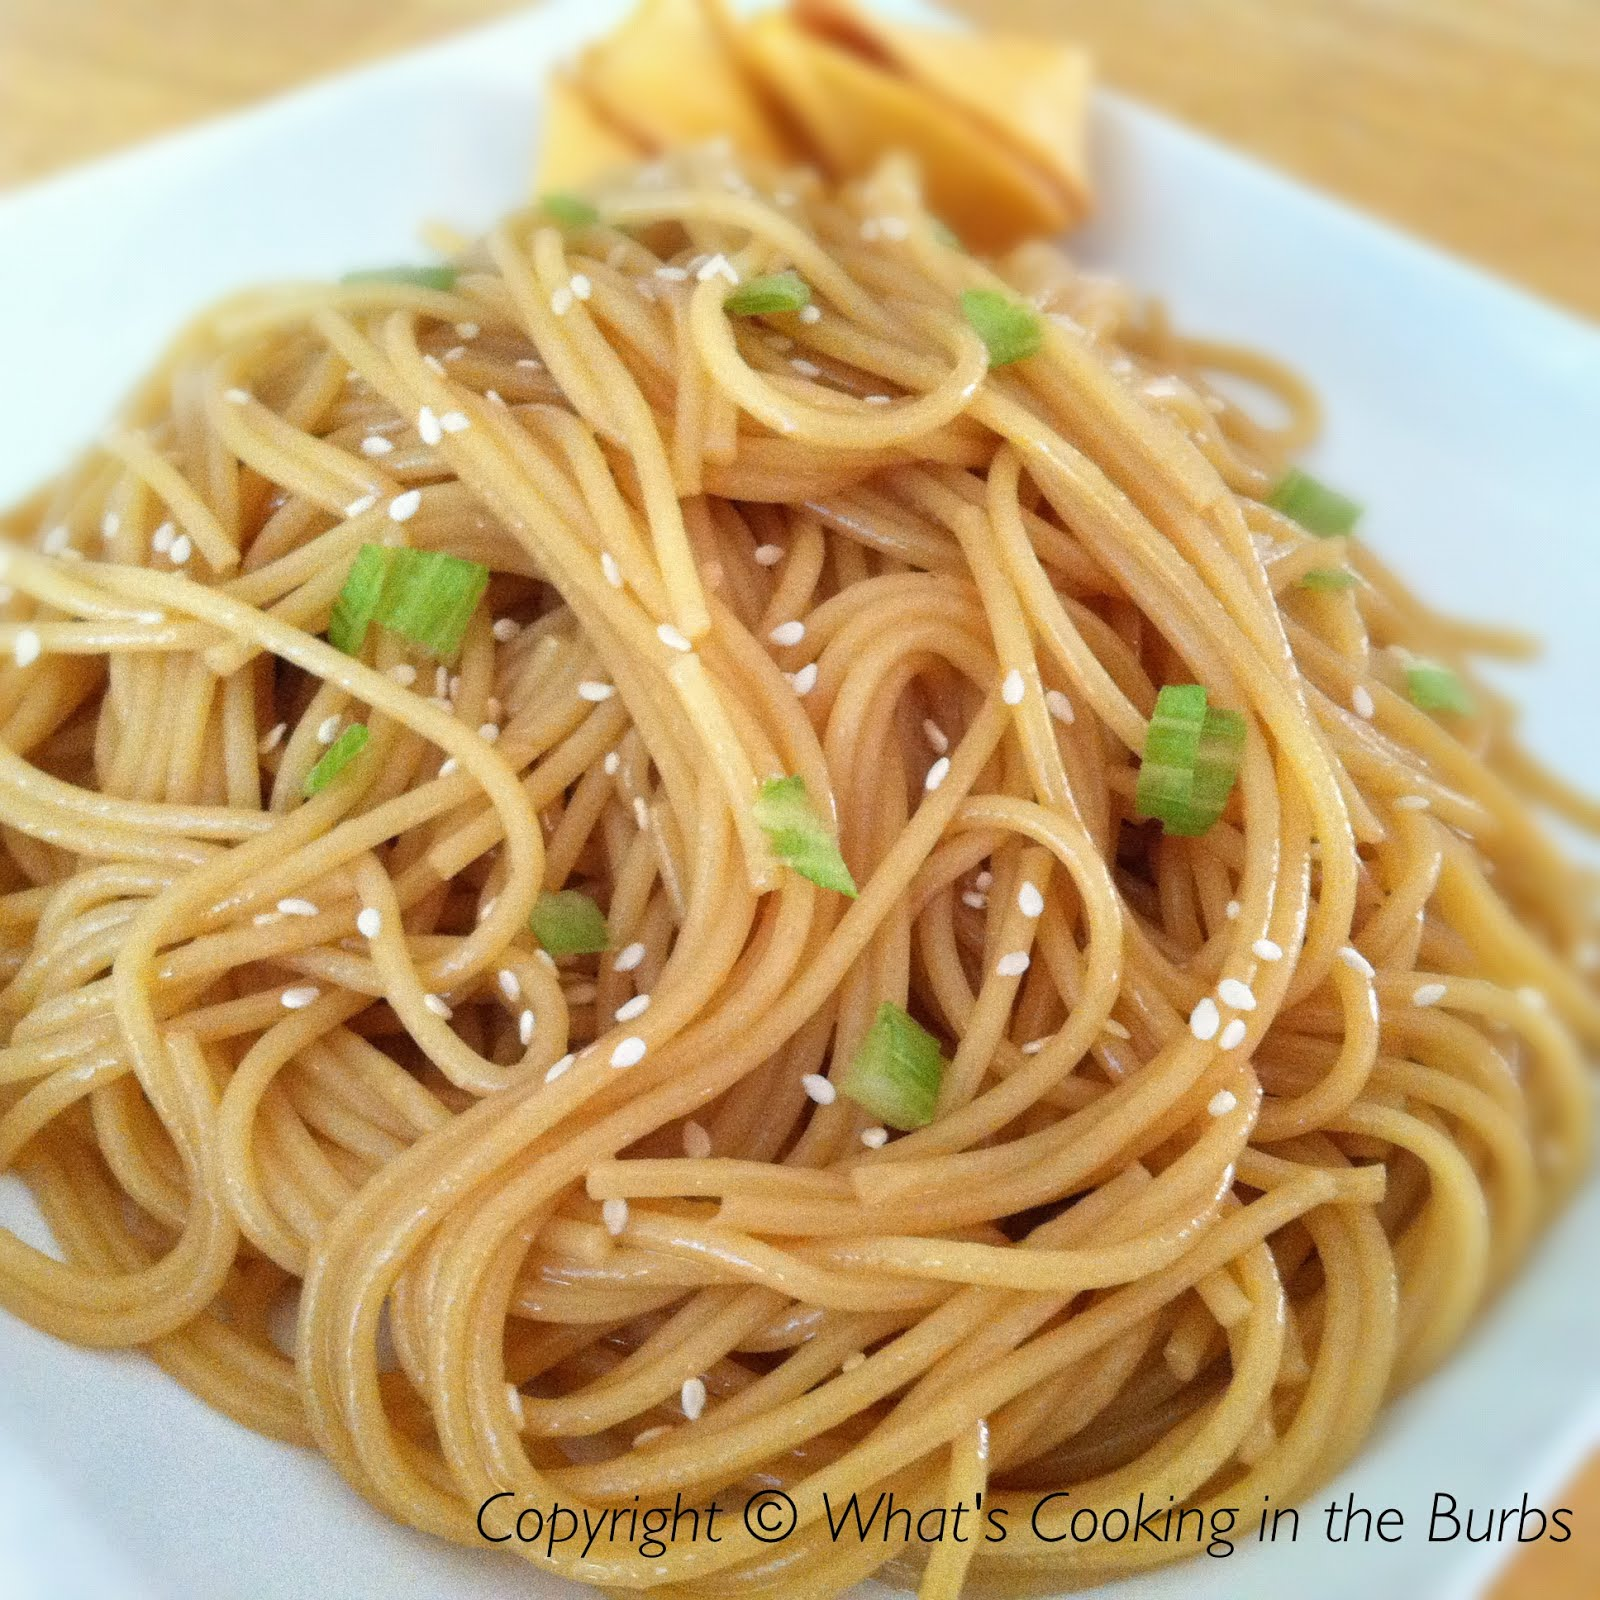 What's Cooking in the Burbs: Honey Sesame Noodles